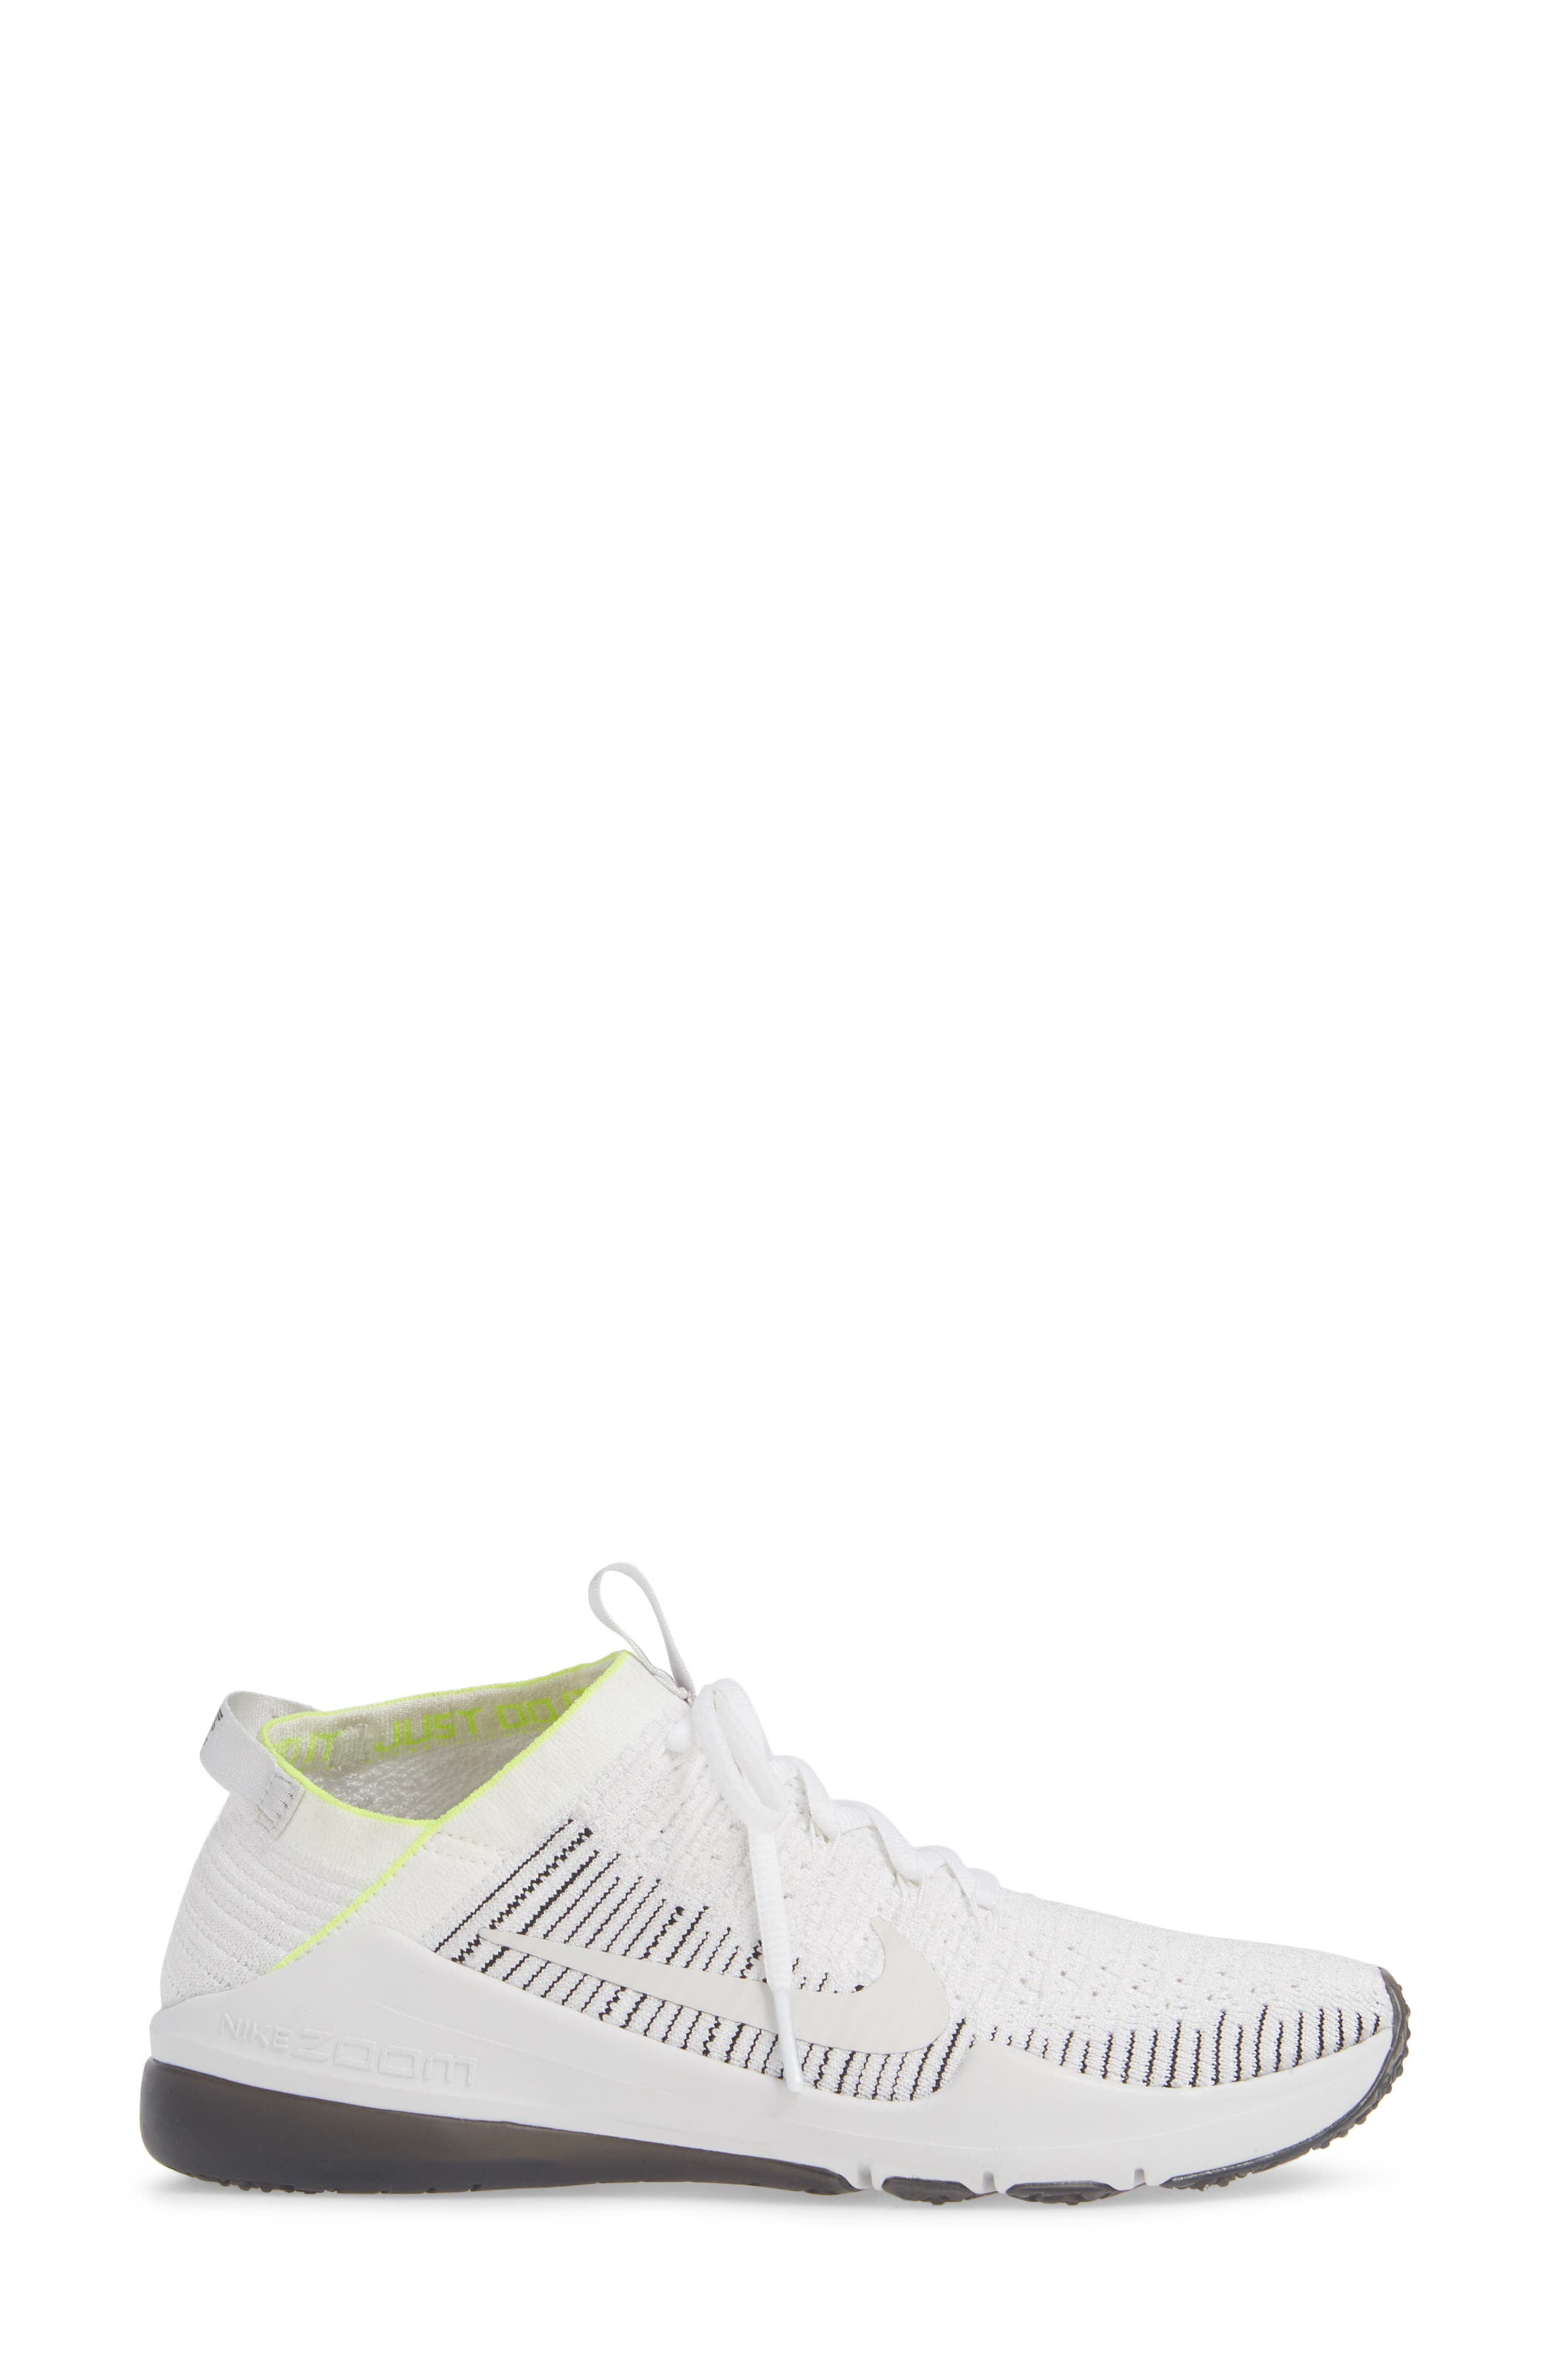 Air Zoom Fearless Flyknit 2 Training Sneaker,                             Alternate thumbnail 3, color,                             101